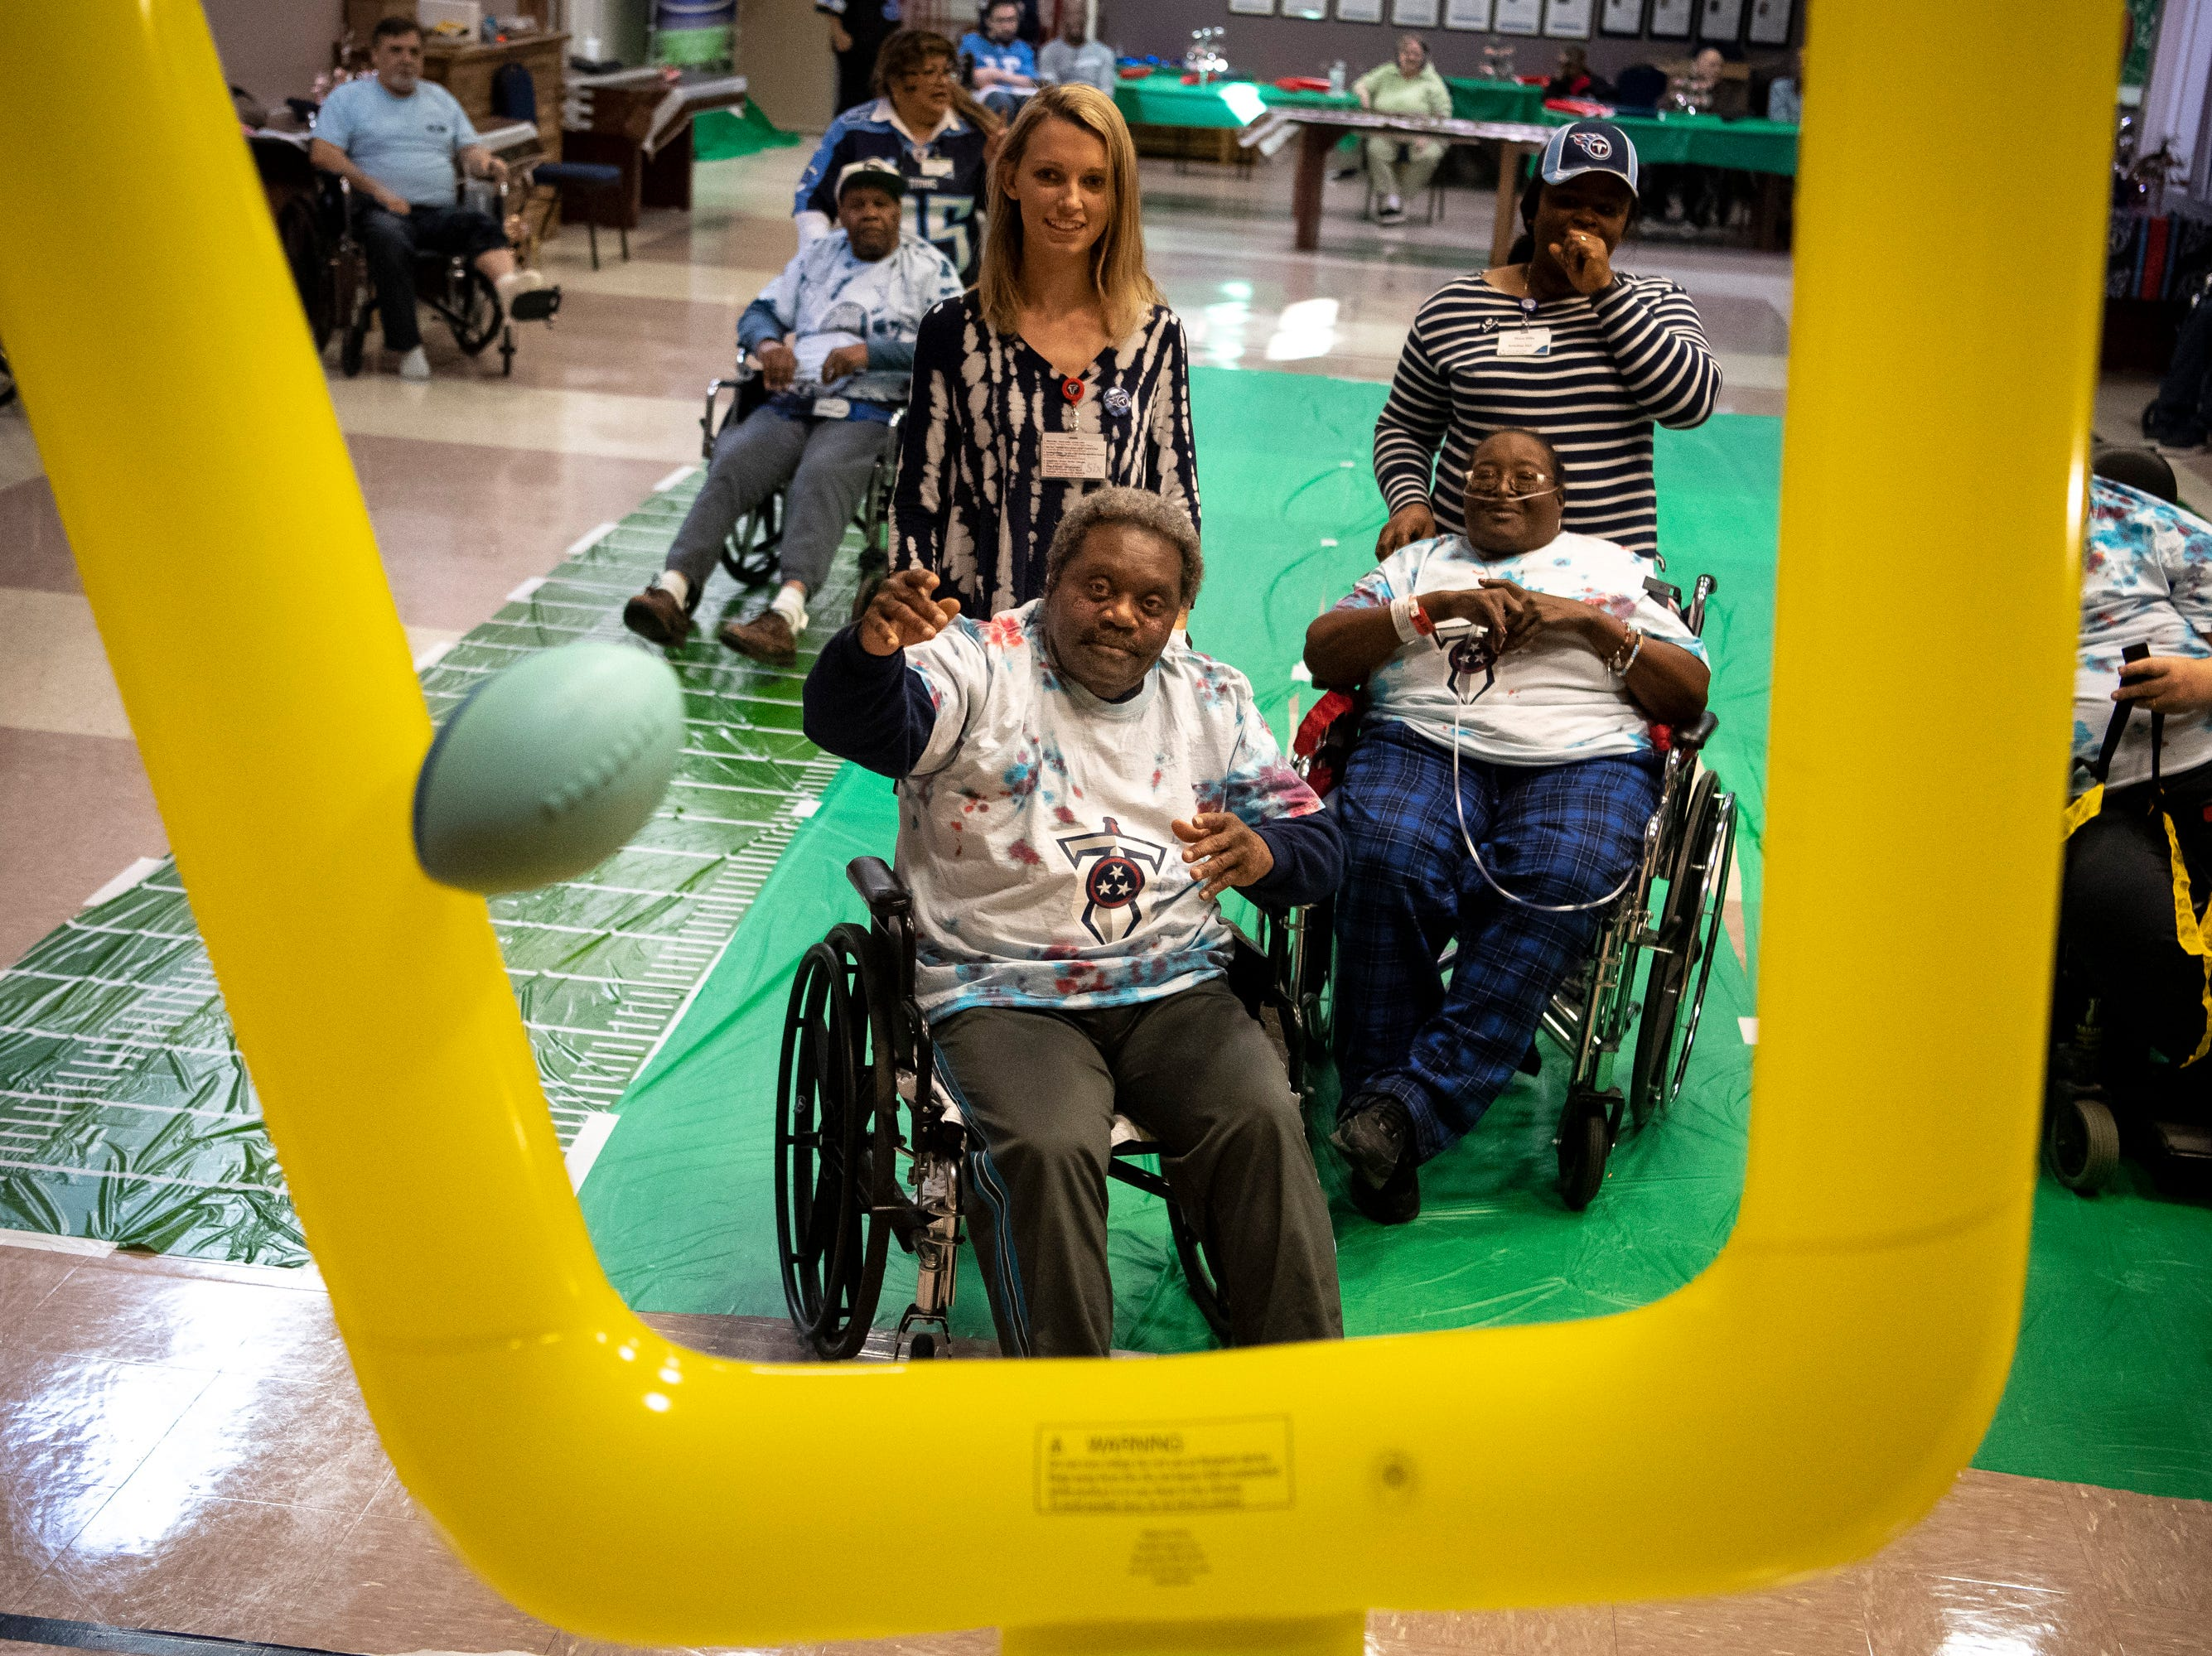 James Guest, center, throws in a field goal during the Wheelchair Super Bowl at Nashville Community Care and Rehabilitation at Bordeaux in Nashville, Tenn., Friday, Feb. 1, 2019.